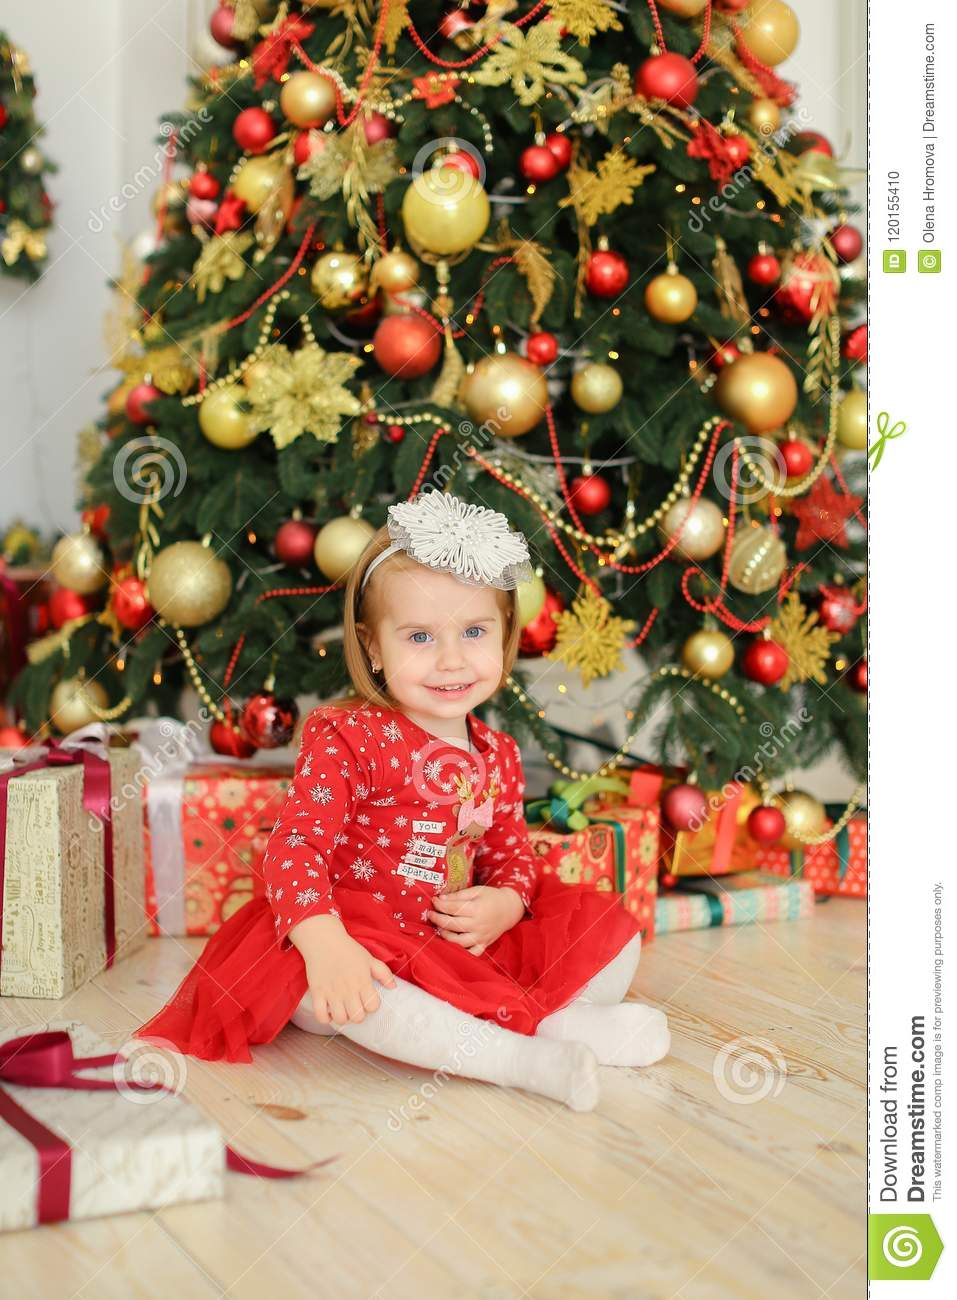 Little Female Kid Wearing Red Dress Sitting On Floor Near Gifts And ...